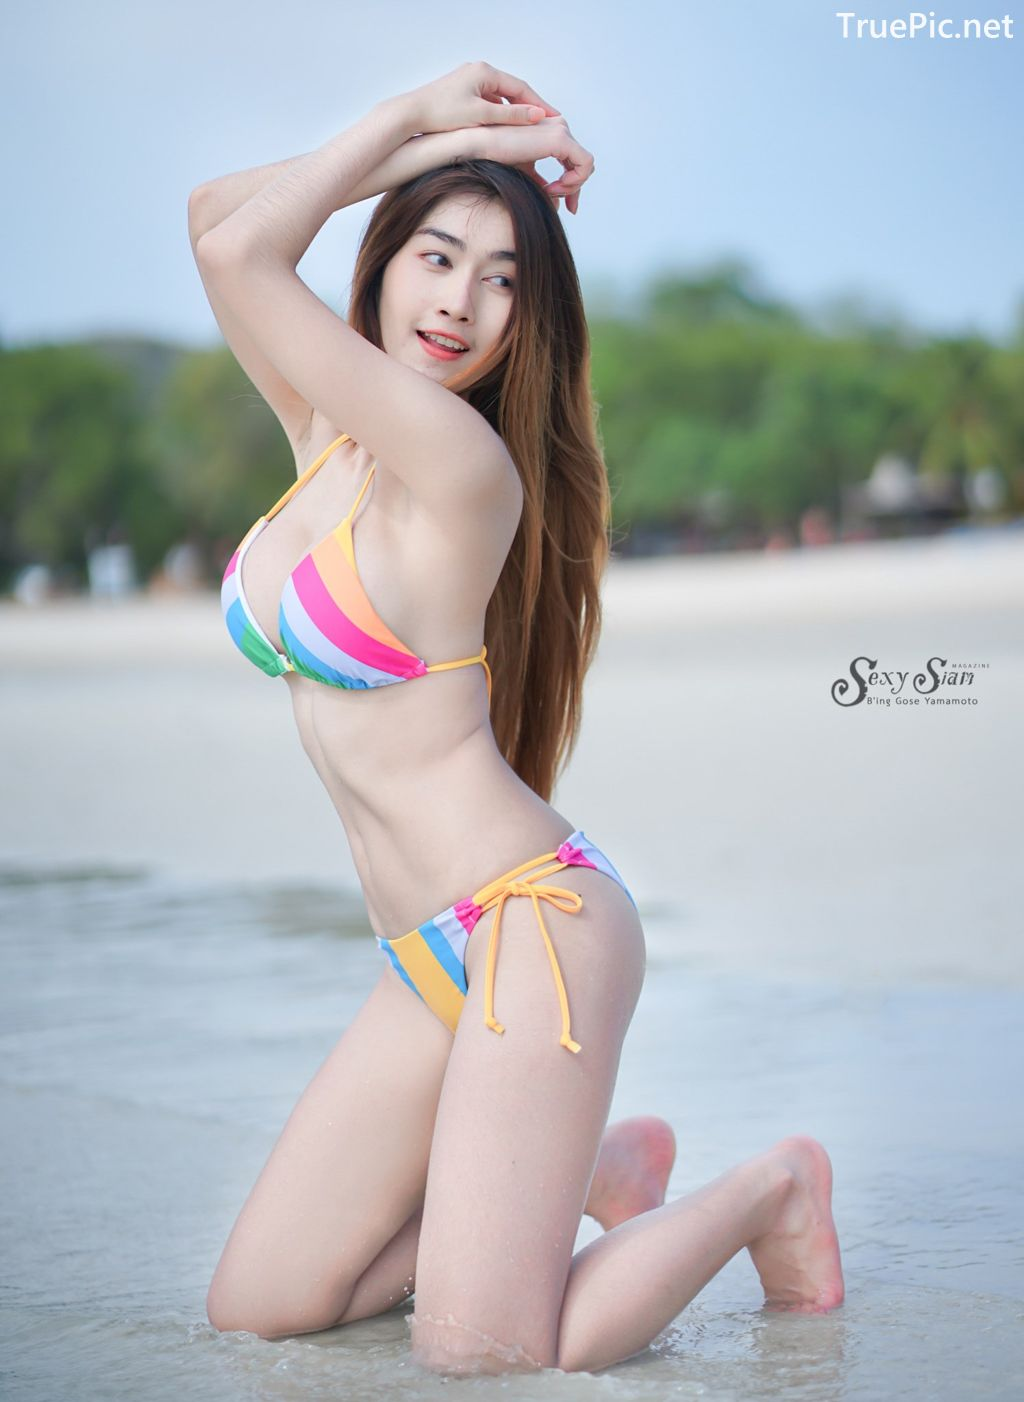 Image-Thailand-Hot-Model-Nisa-Khamarat-Bikini-For-Songkran-Festival-TruePic.net- Picture-9